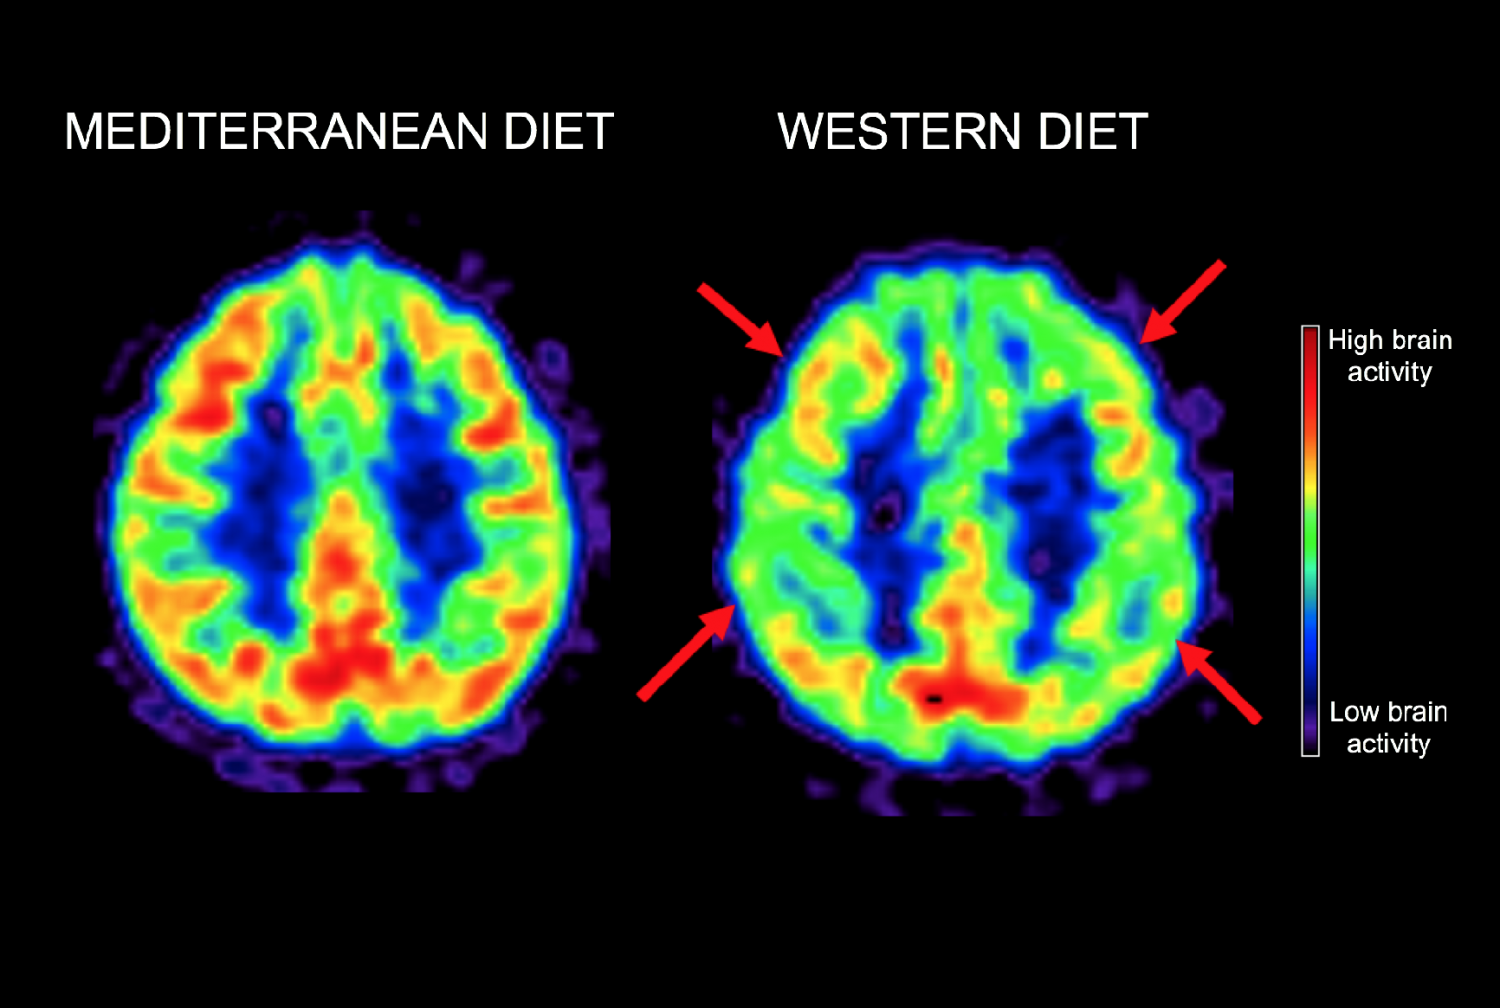 PET scan that shows the brain activity of a 50-year-old woman on a Mediterranean-style diet and of a 50-year-old woman who's followed a Western diet most of her life